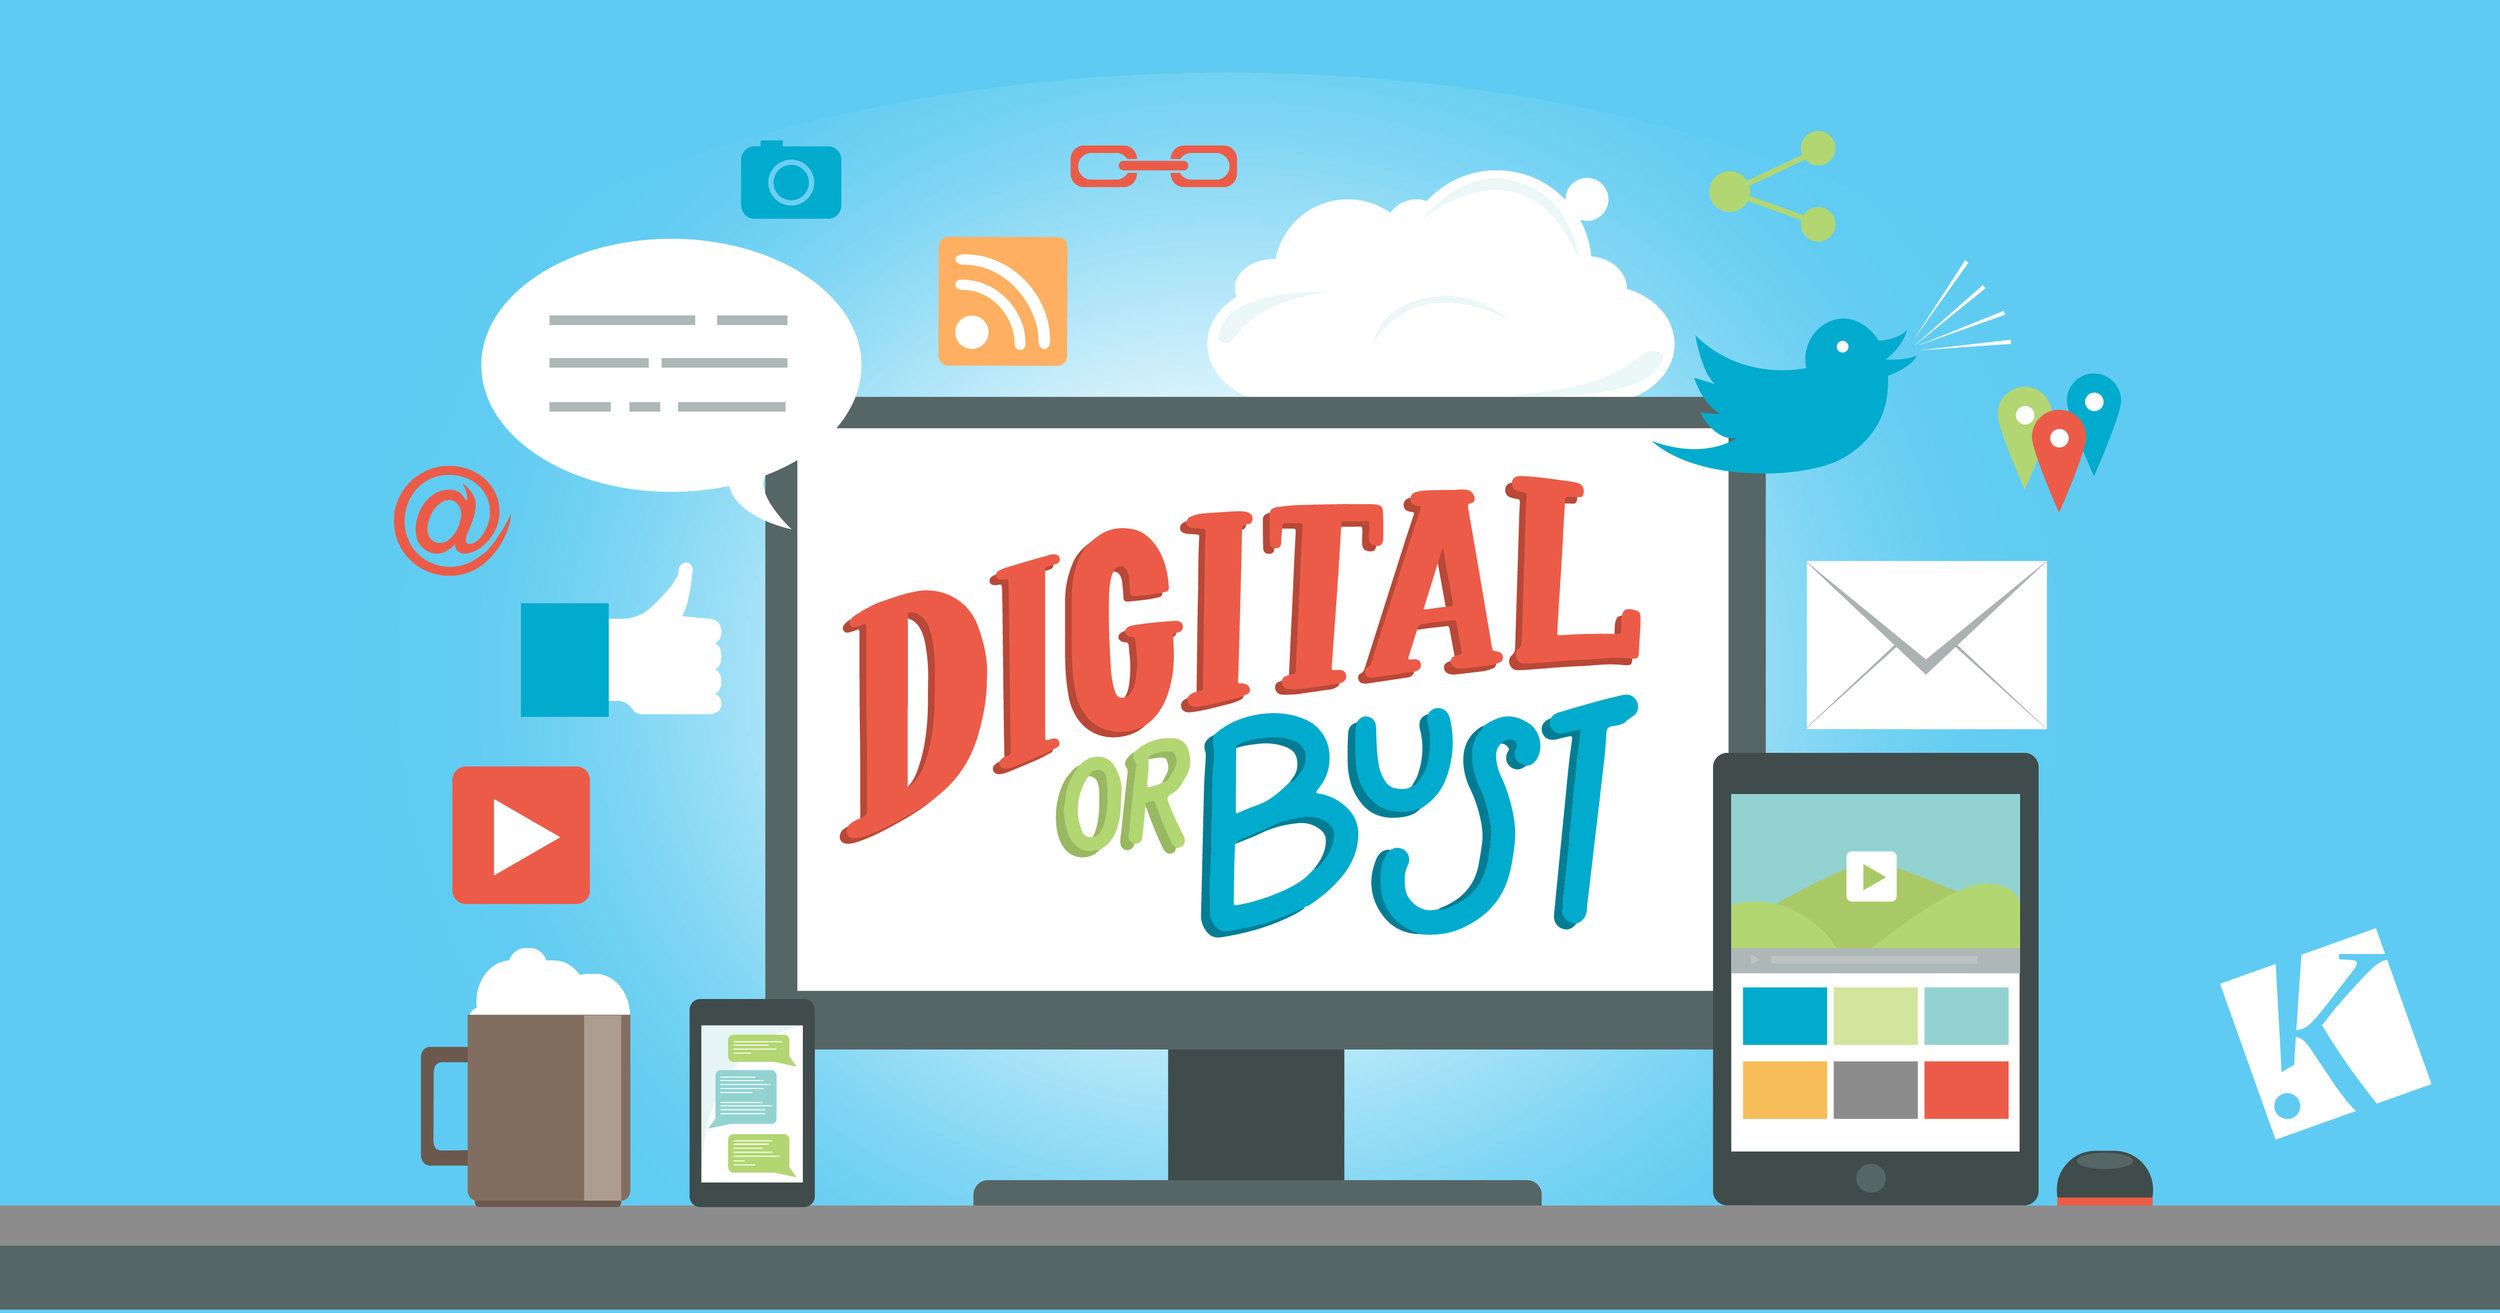 DIGITAL OR BUST: THE END OF THE TRADITIONAL AD AGENCY